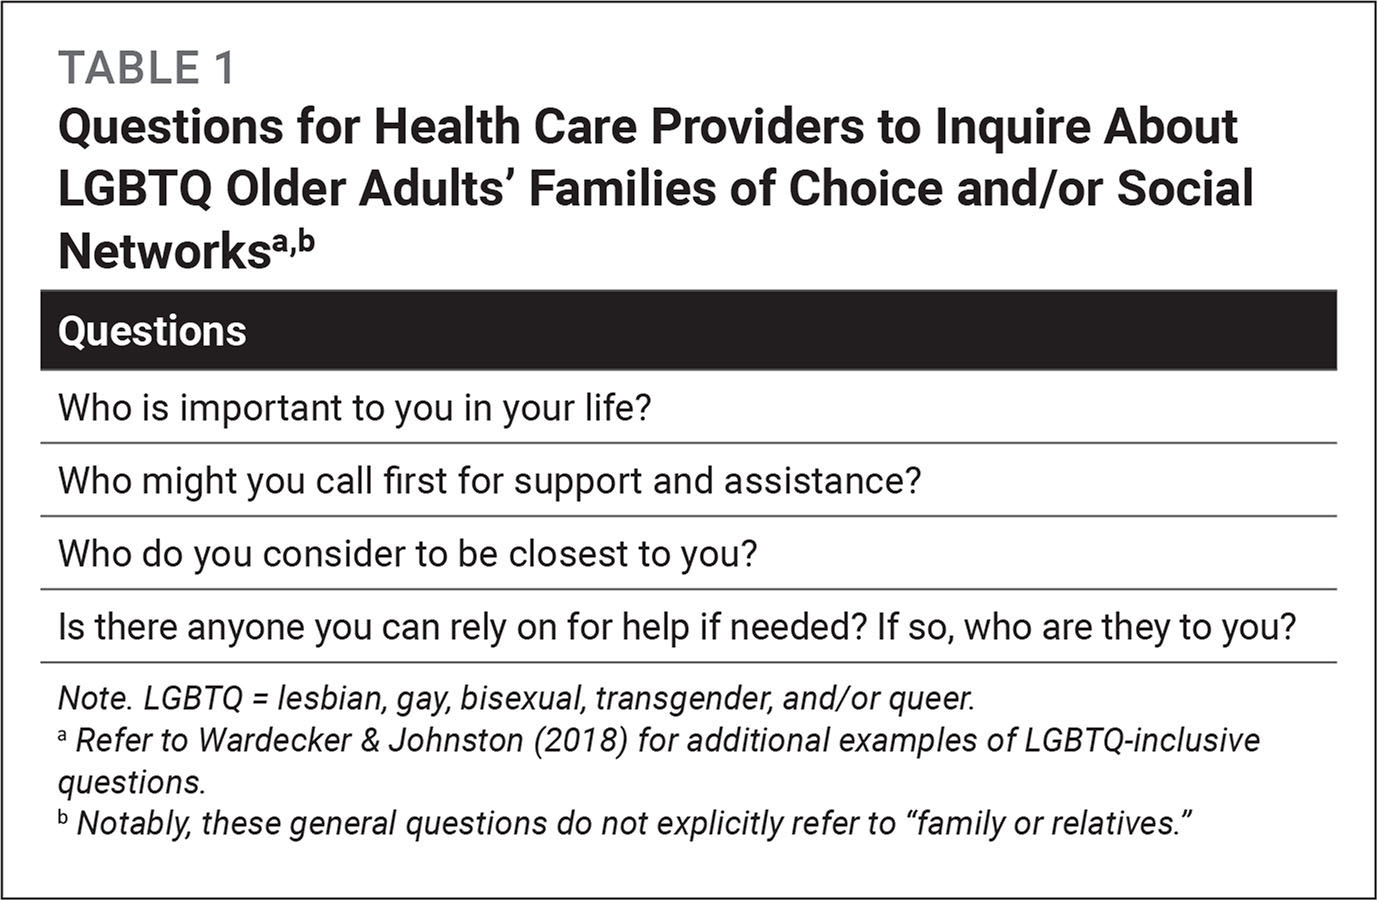 Questions for Health Care Providers to Inquire About LGBTQ Older Adults' Families of Choice and/or Social Networksa,b